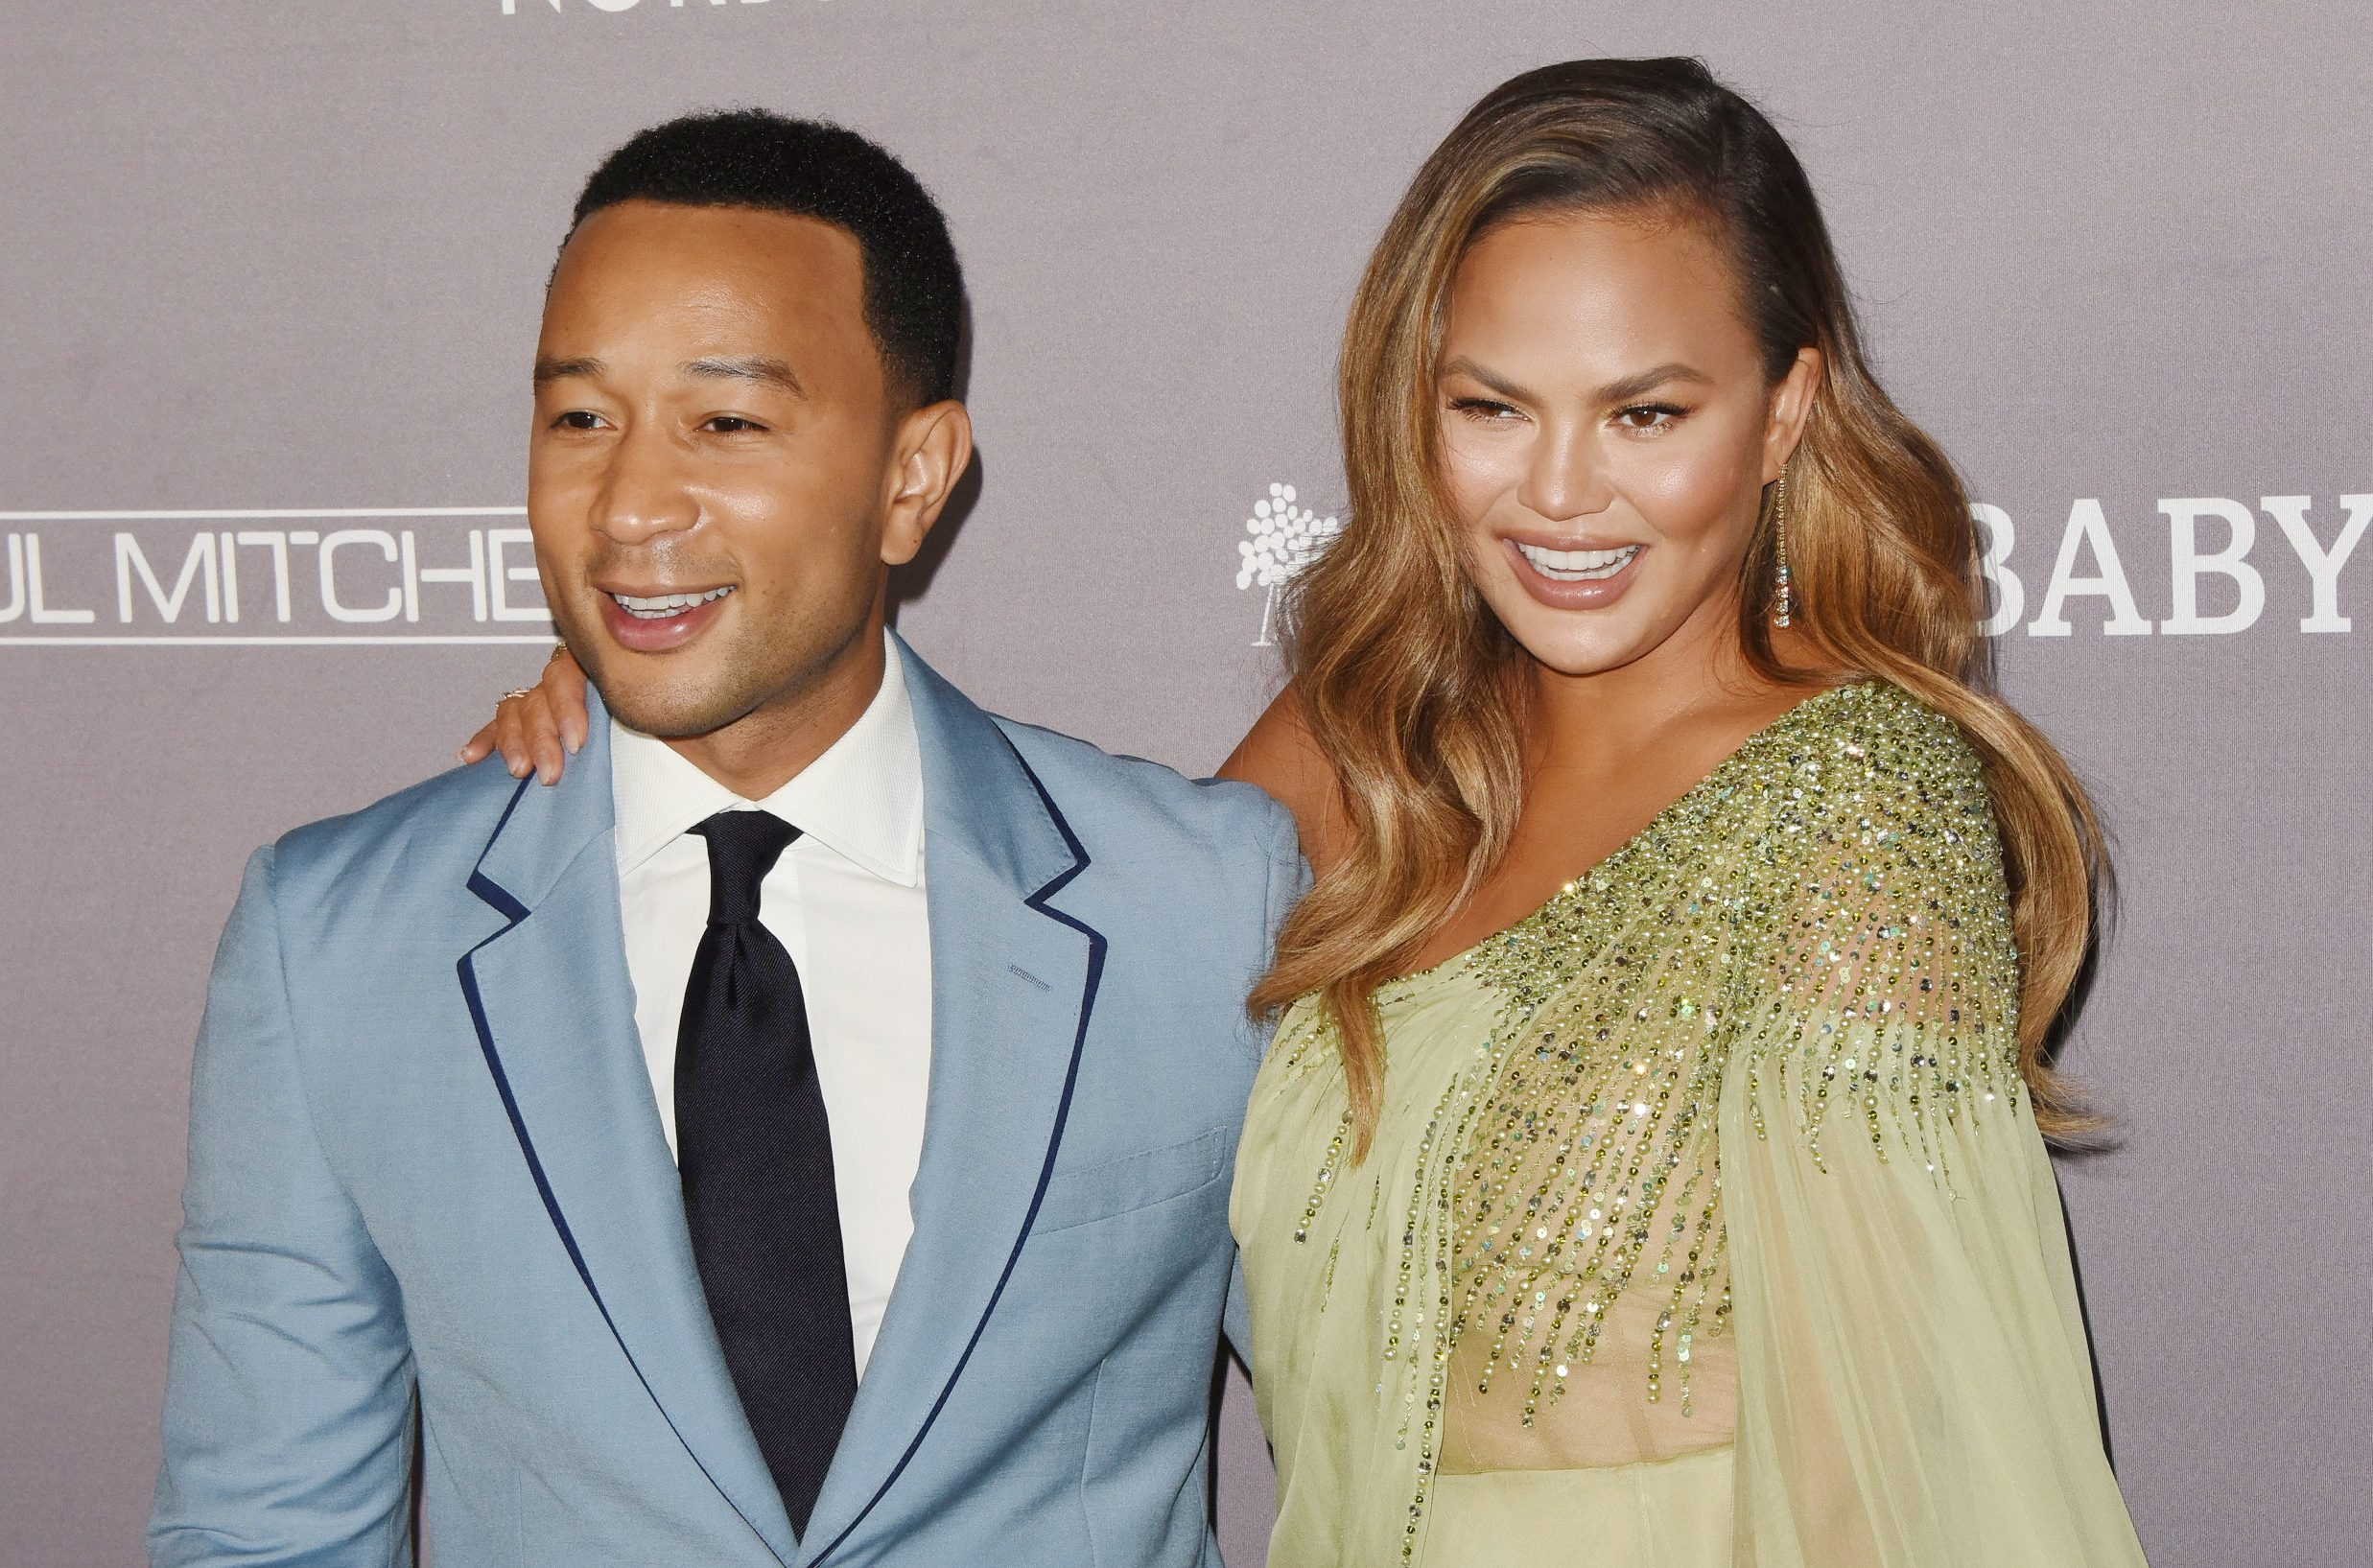 Chrissy Teigen, John Legend attends the 2019 Baby2Baby Gala Presented By Paul Mitchell at 3LABS on November 09, 2019 in Culver City, California\n© Jill Johnson/jpistudios.com